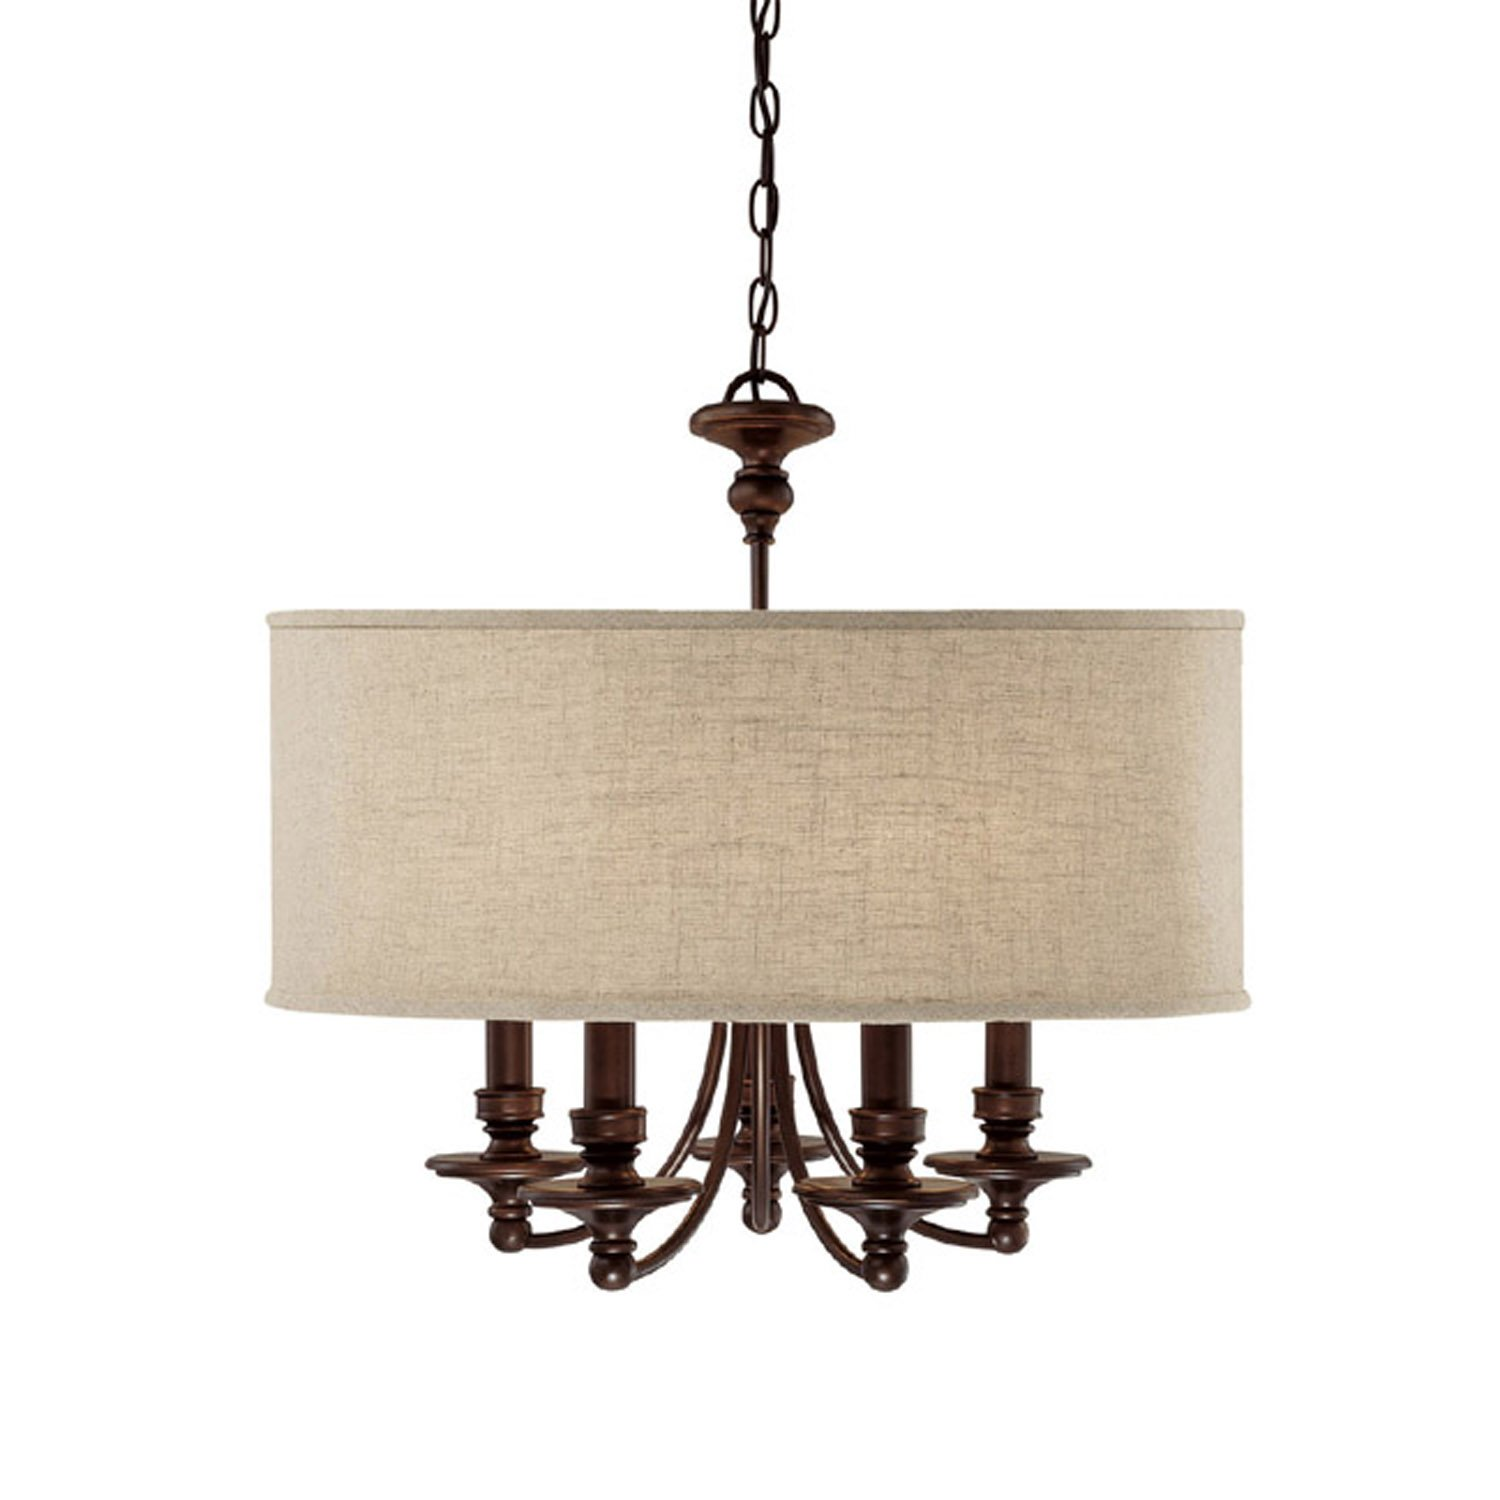 Com Capital Lighting 3915bb 454 Chandelier With Beige Fabric Shades Burnished Bronze Finish Home Kitchen